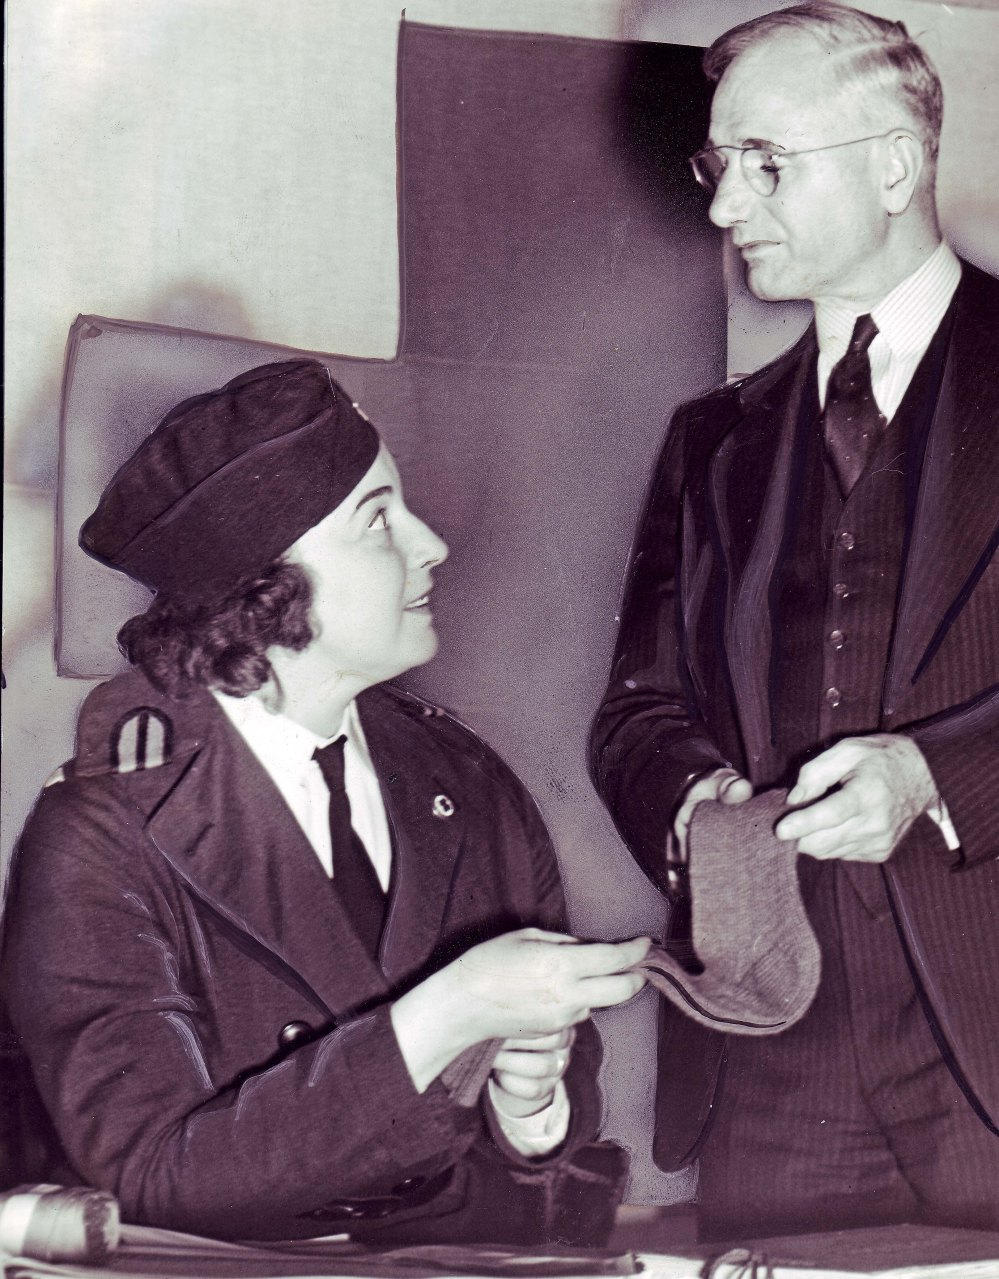 Elise once again makes the frontpage, this time as a lieutenant in the Albany County Chapter of the American Red Cross. She shows Earl Wagner socks knitted for British soldiers. Used by permission of Times Union.